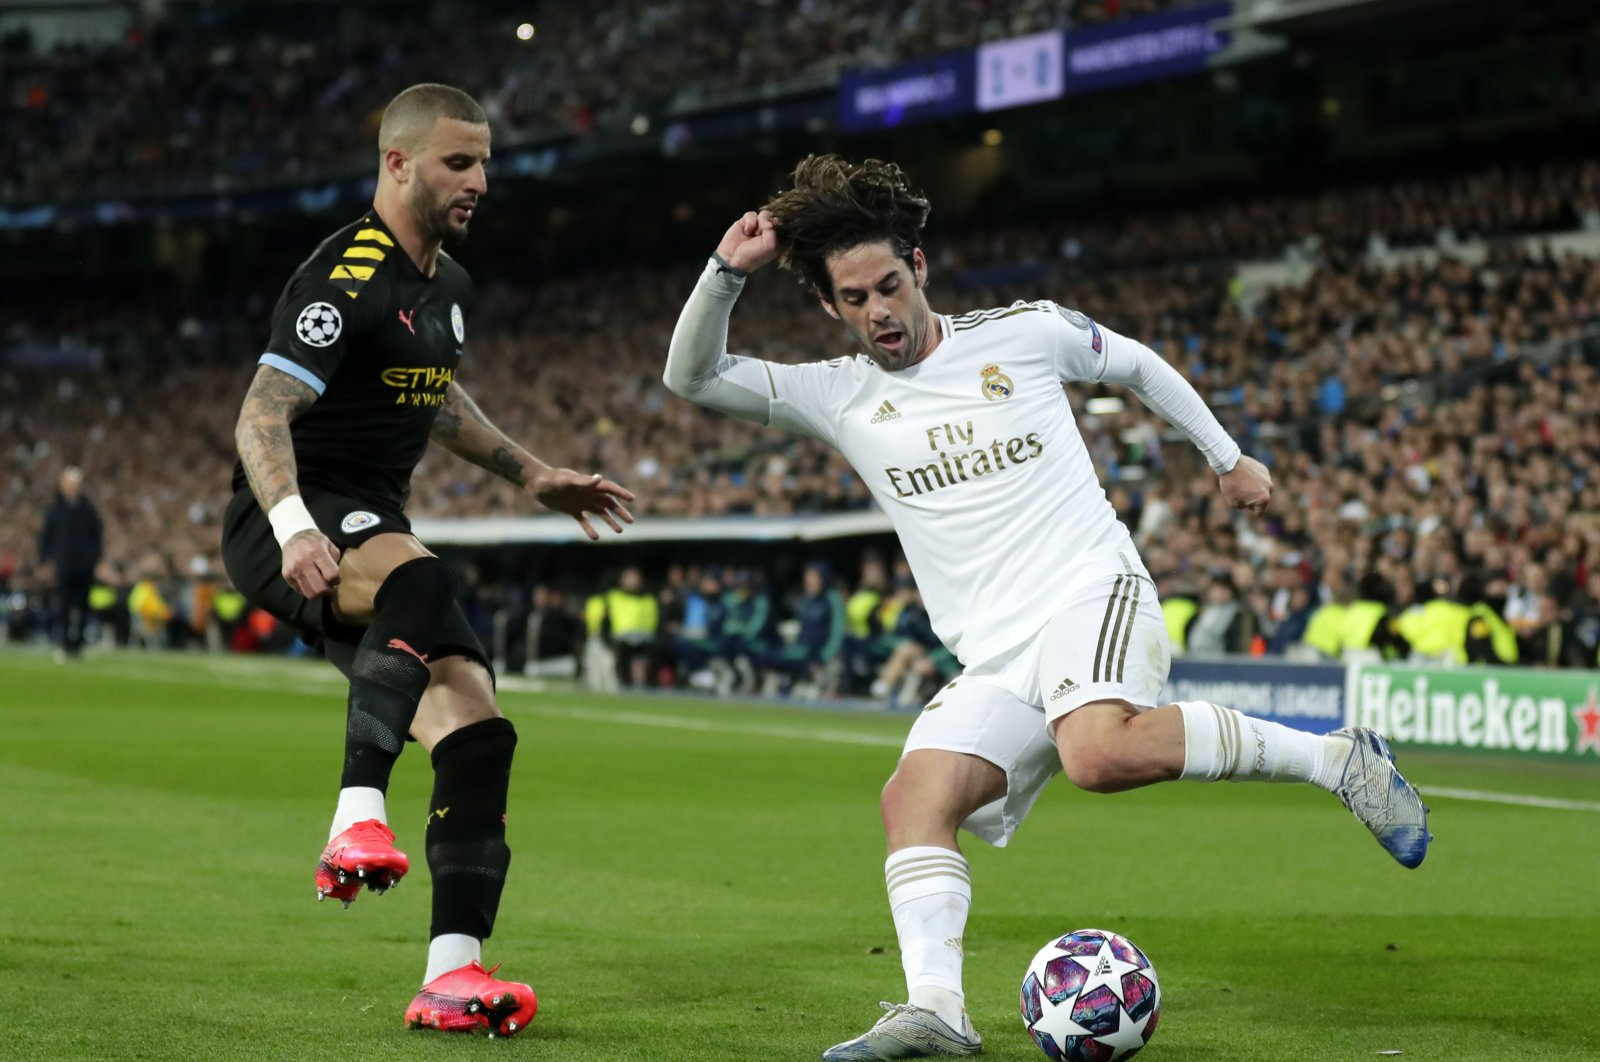 Real Madrid's Isco (R) duels for the ball with Manchester City's Kyle Walker during a Champions League match in Madrid, Spain, Feb. 26, 2020. (AP Photo)